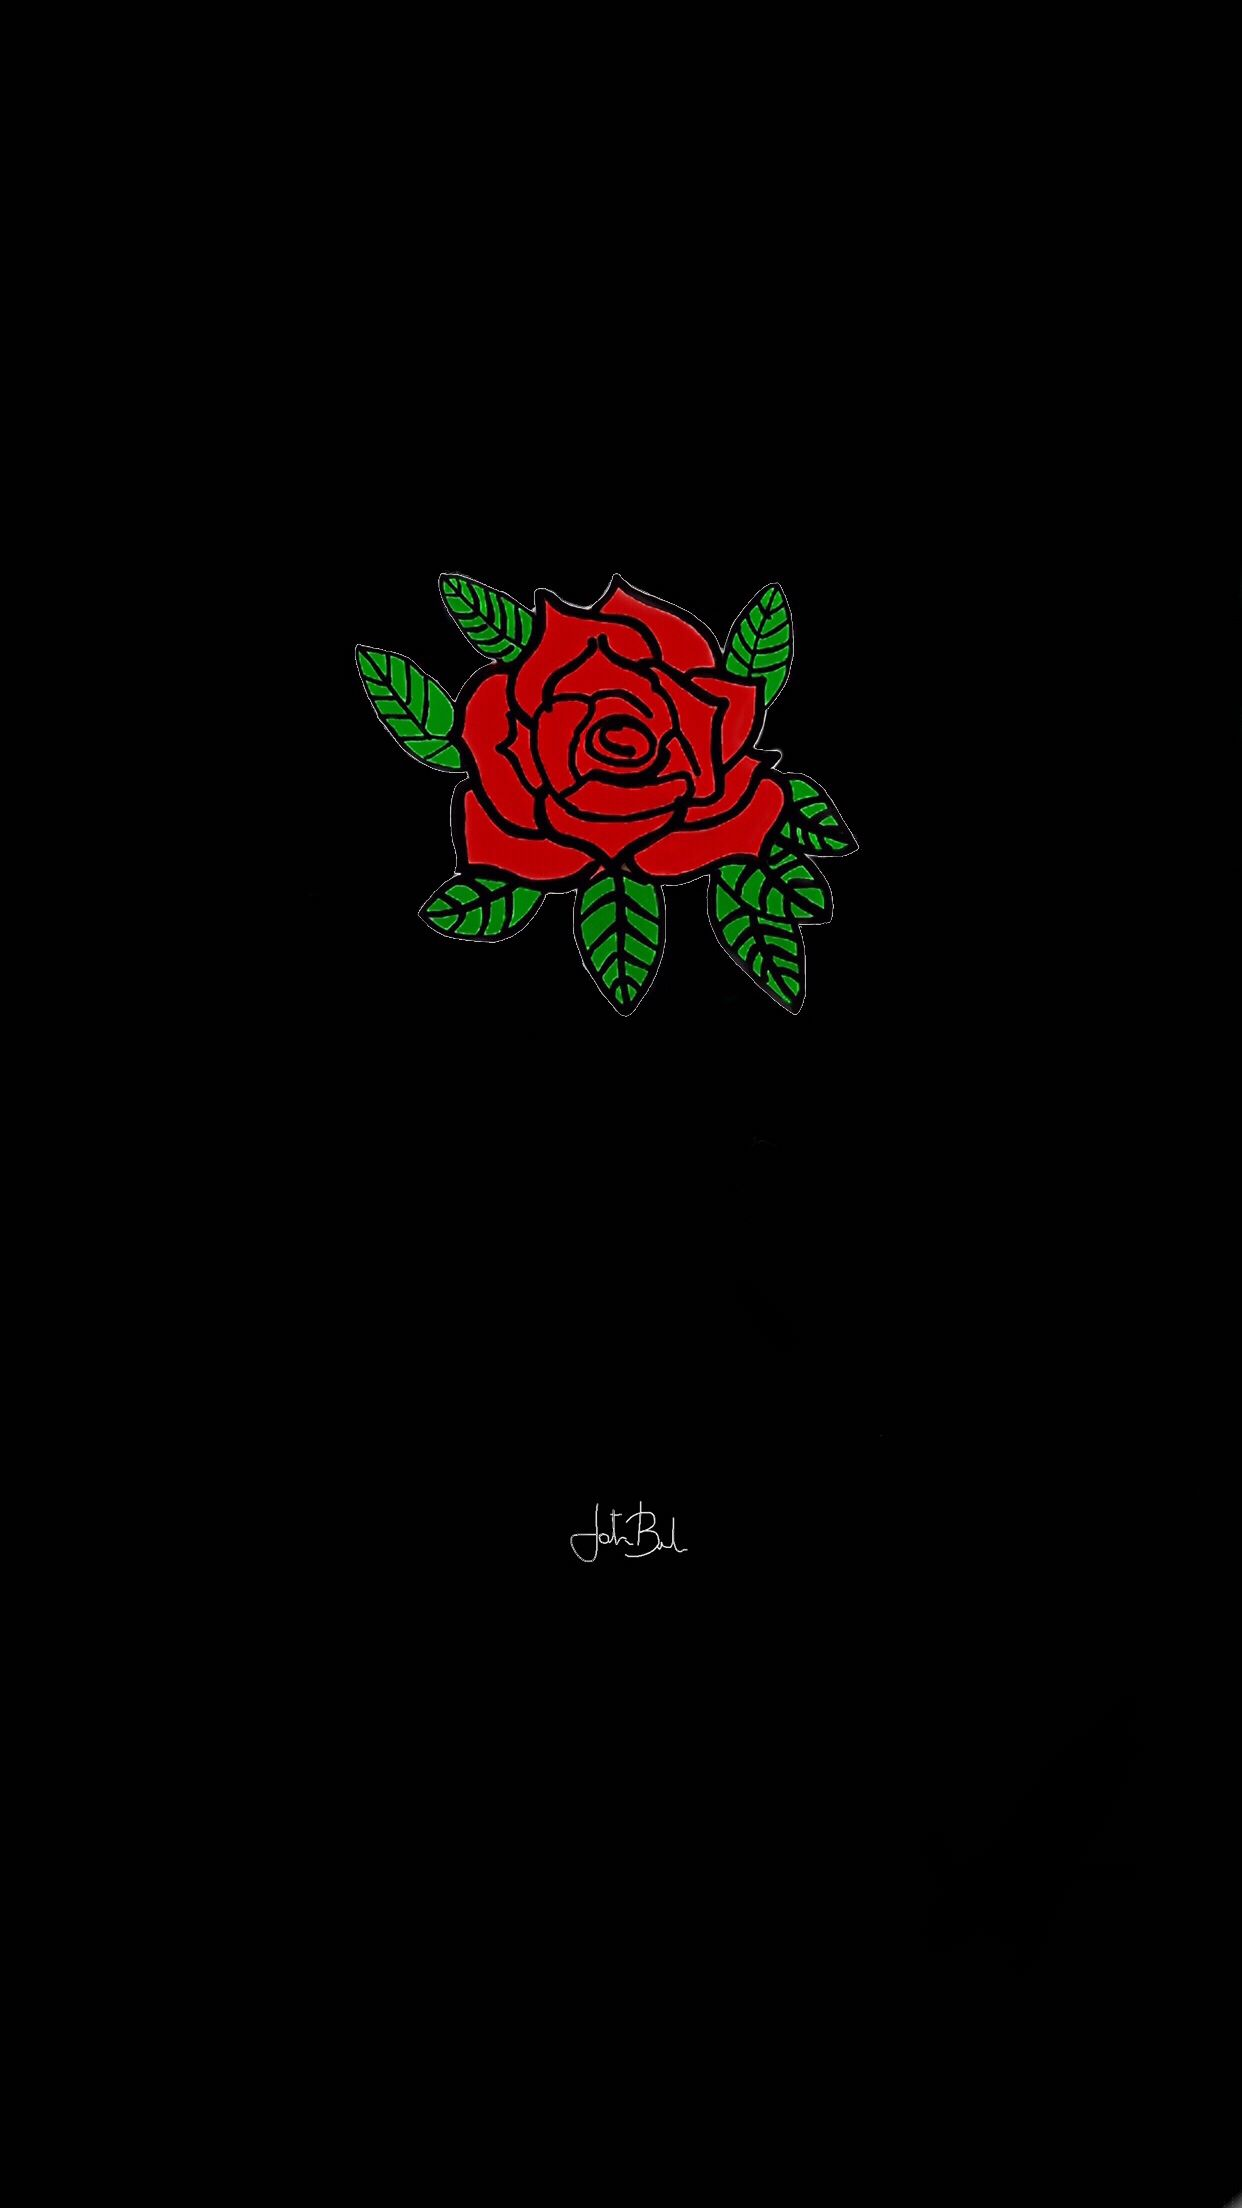 Blackwallpaper Rose Black Red Tumblr Wallpaper